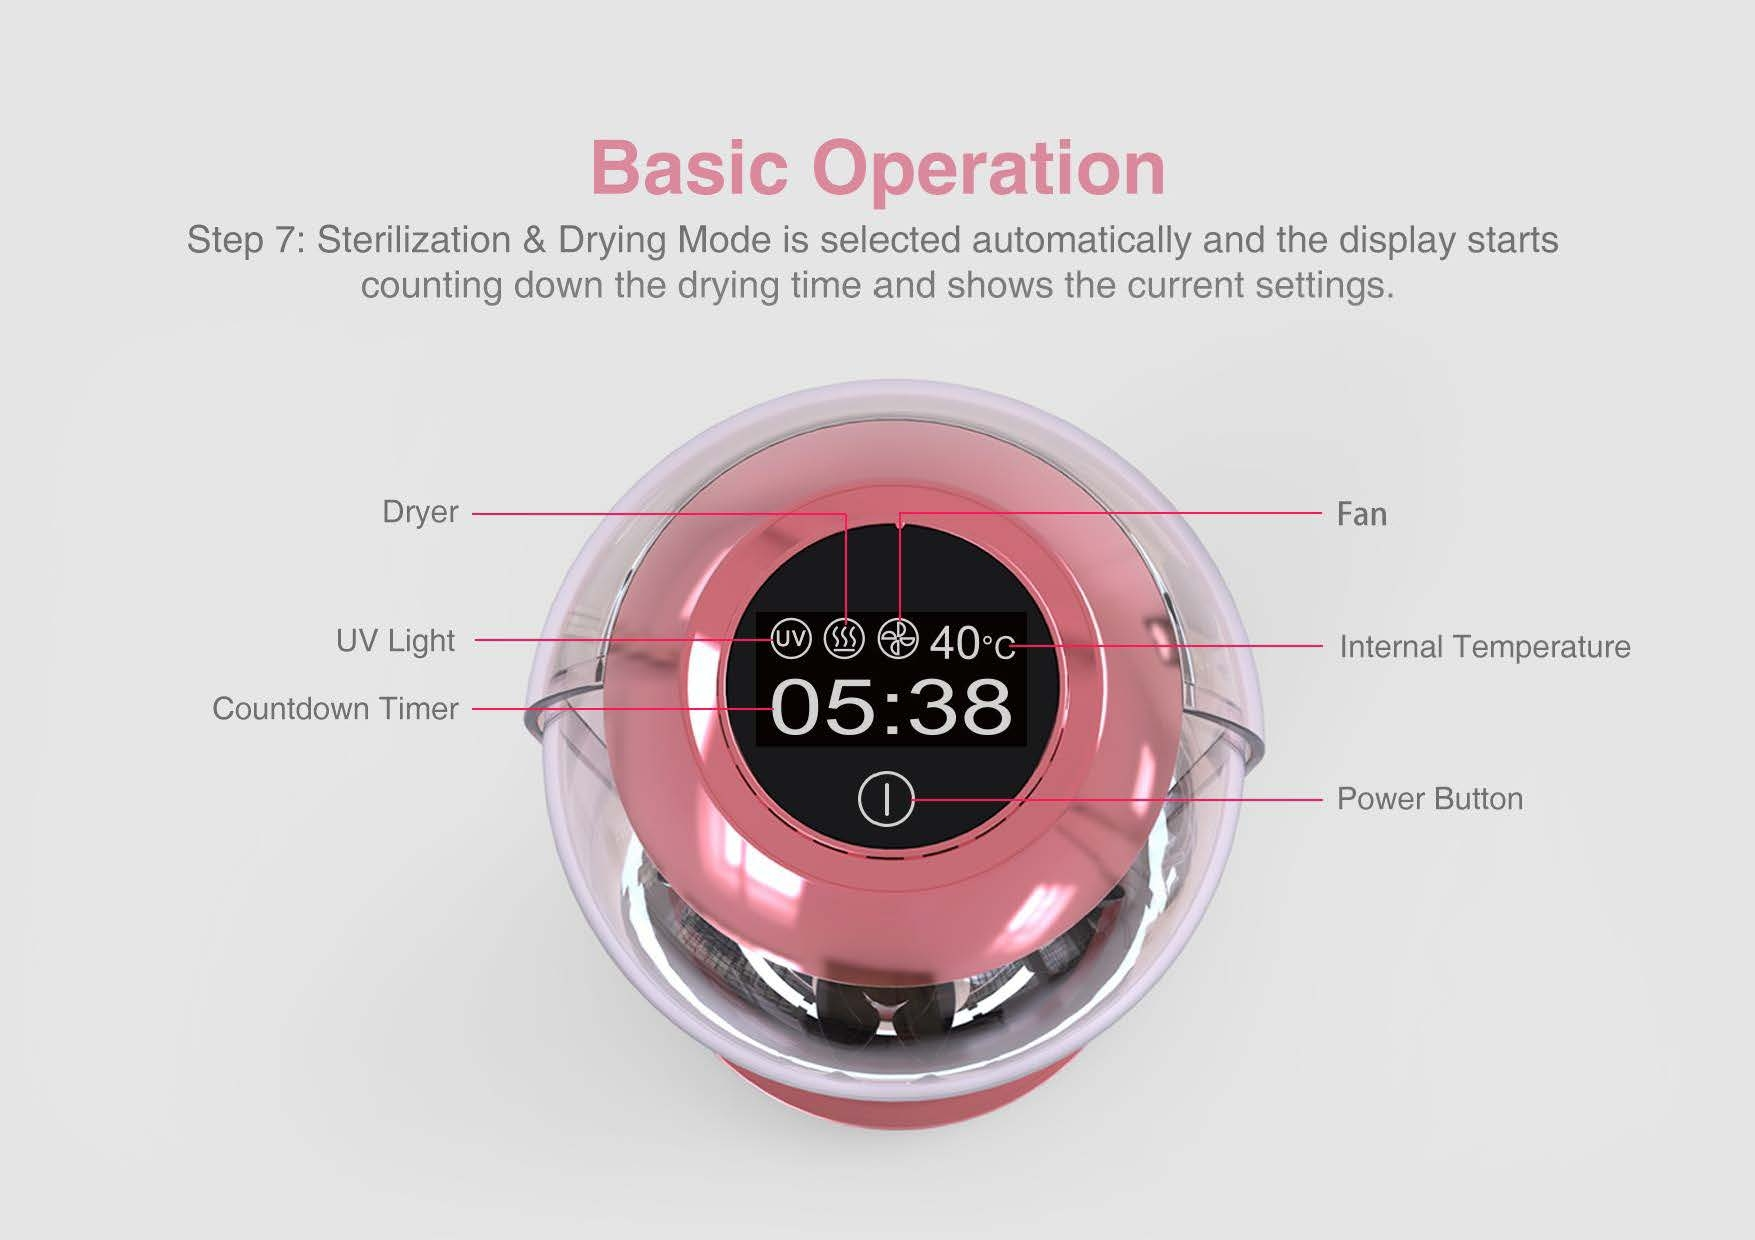 Public Photos / Files - Introduction of IPM-019 Smart Makeup Brush UV Sterilizer and Dryer(without APP)_170711_頁面_23